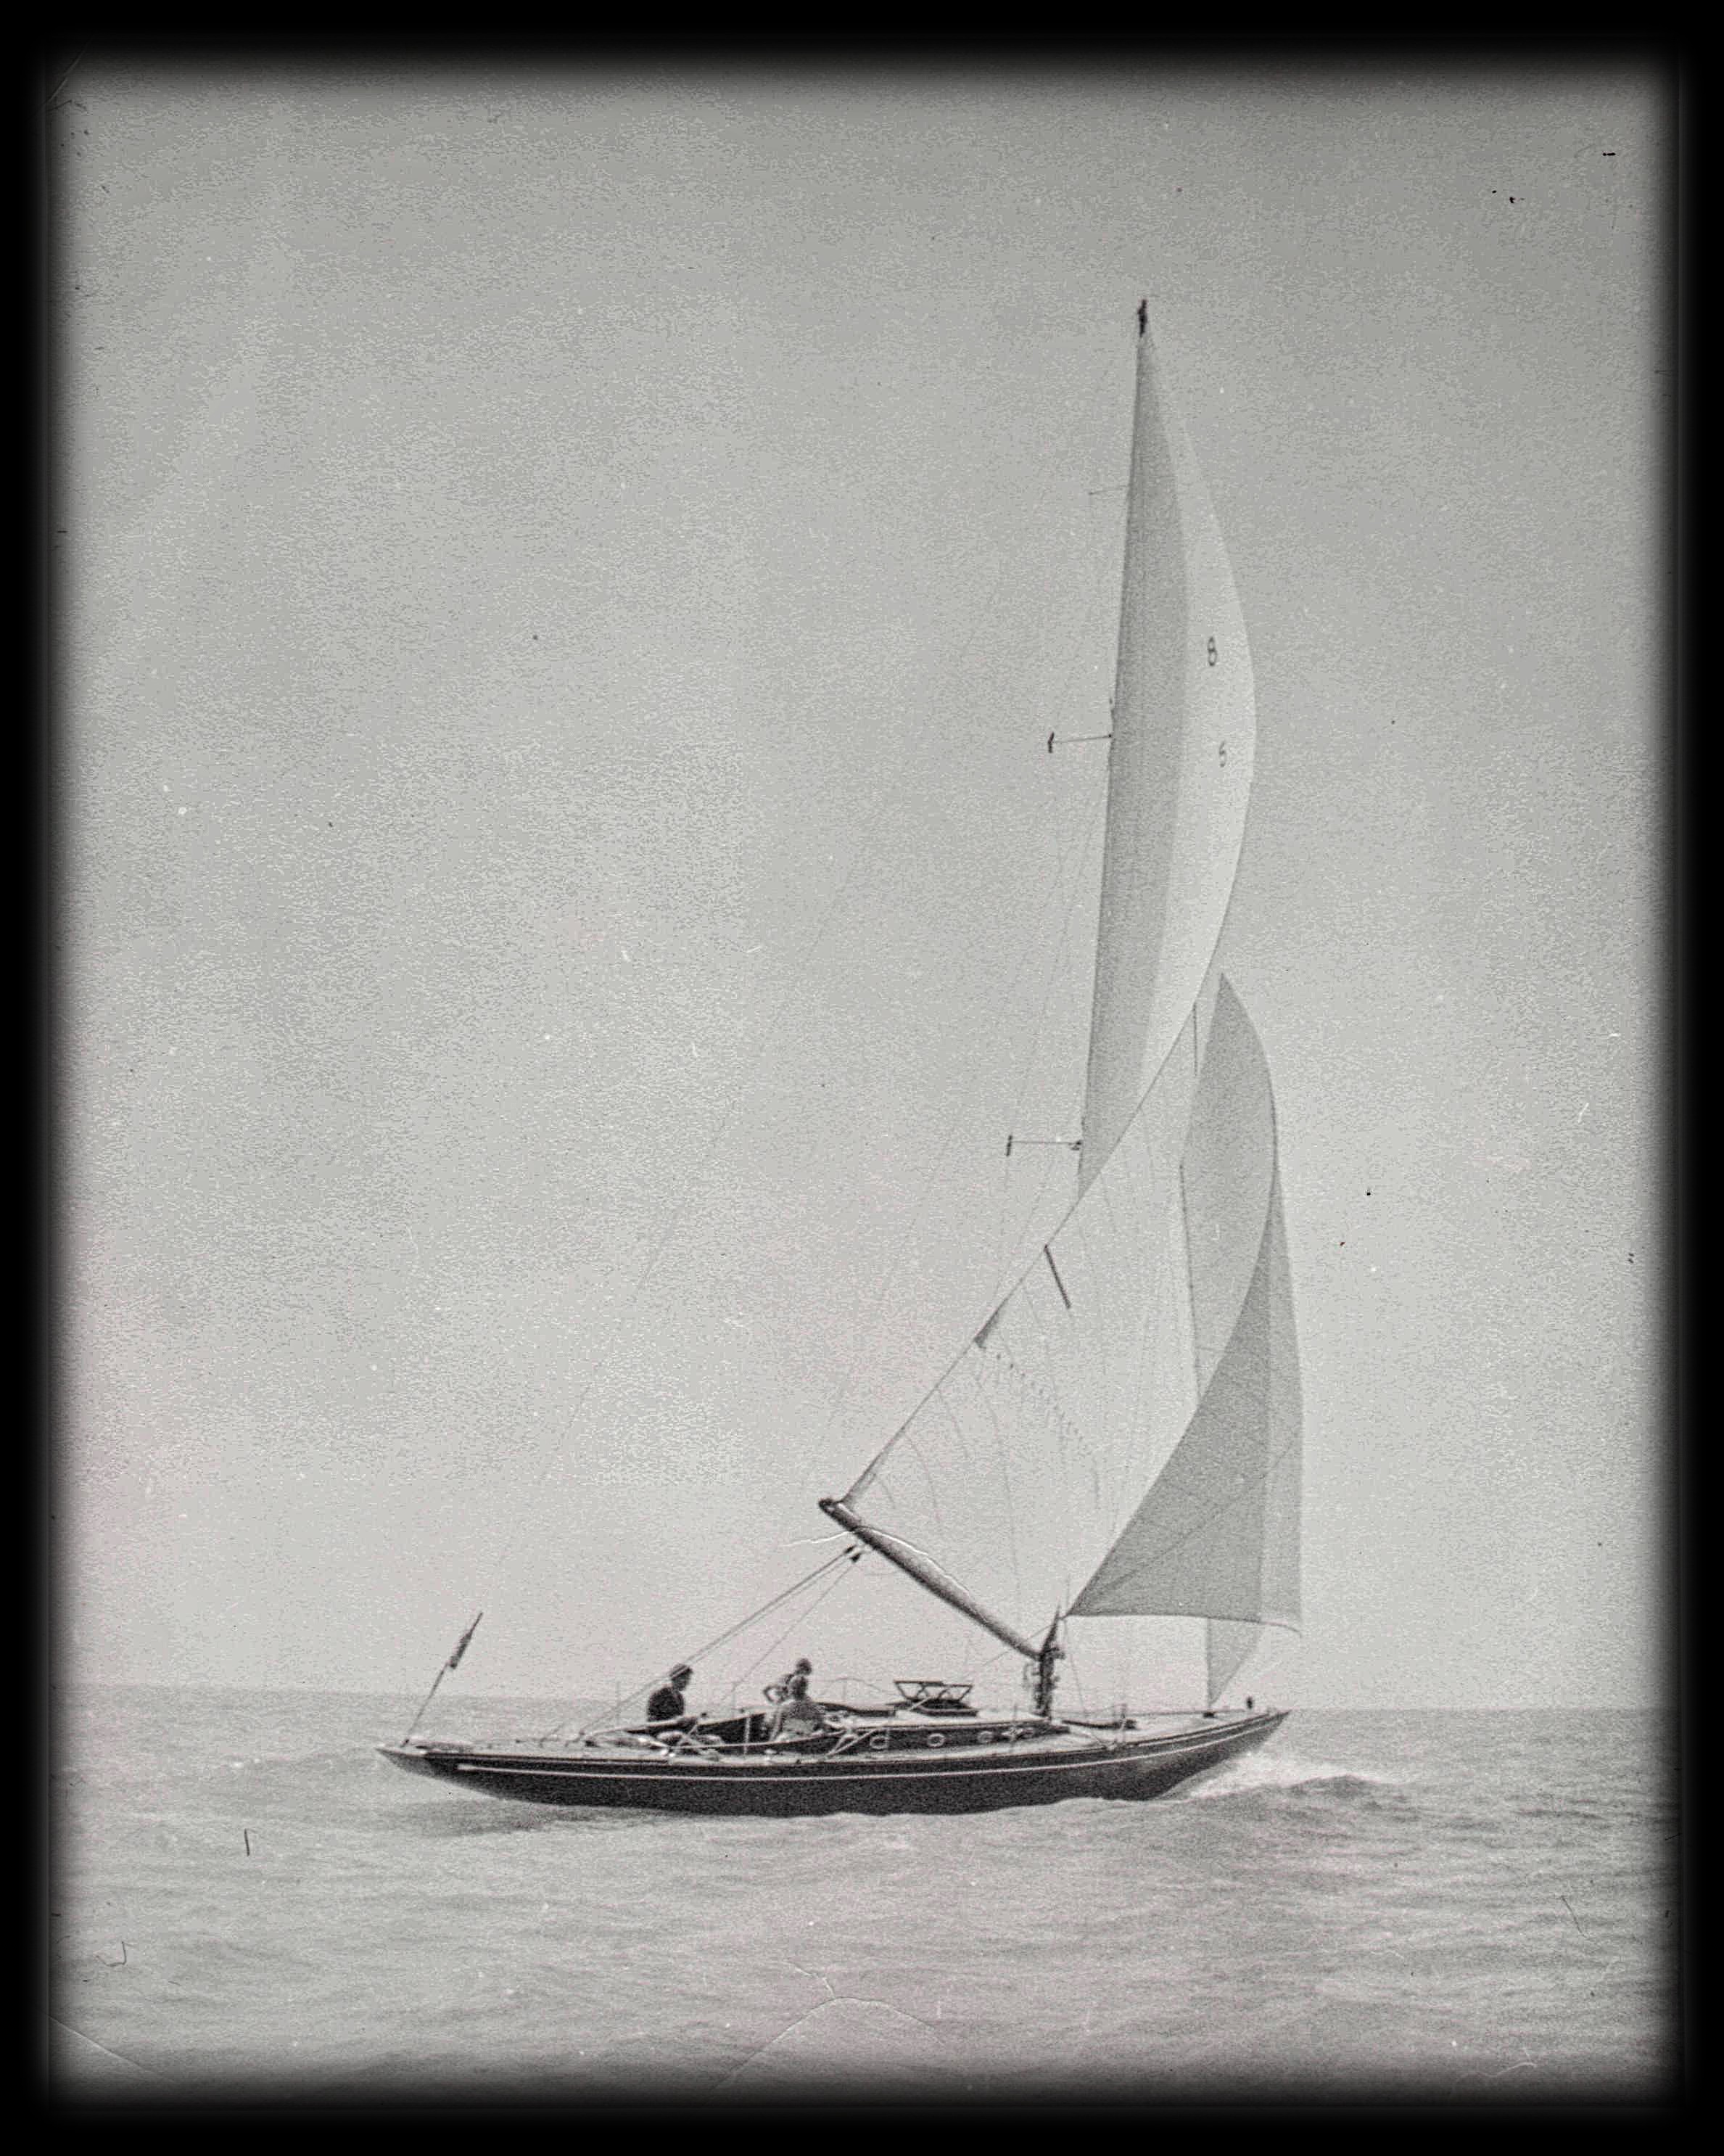 Photo of sailboat Warrior on Lake Michigan